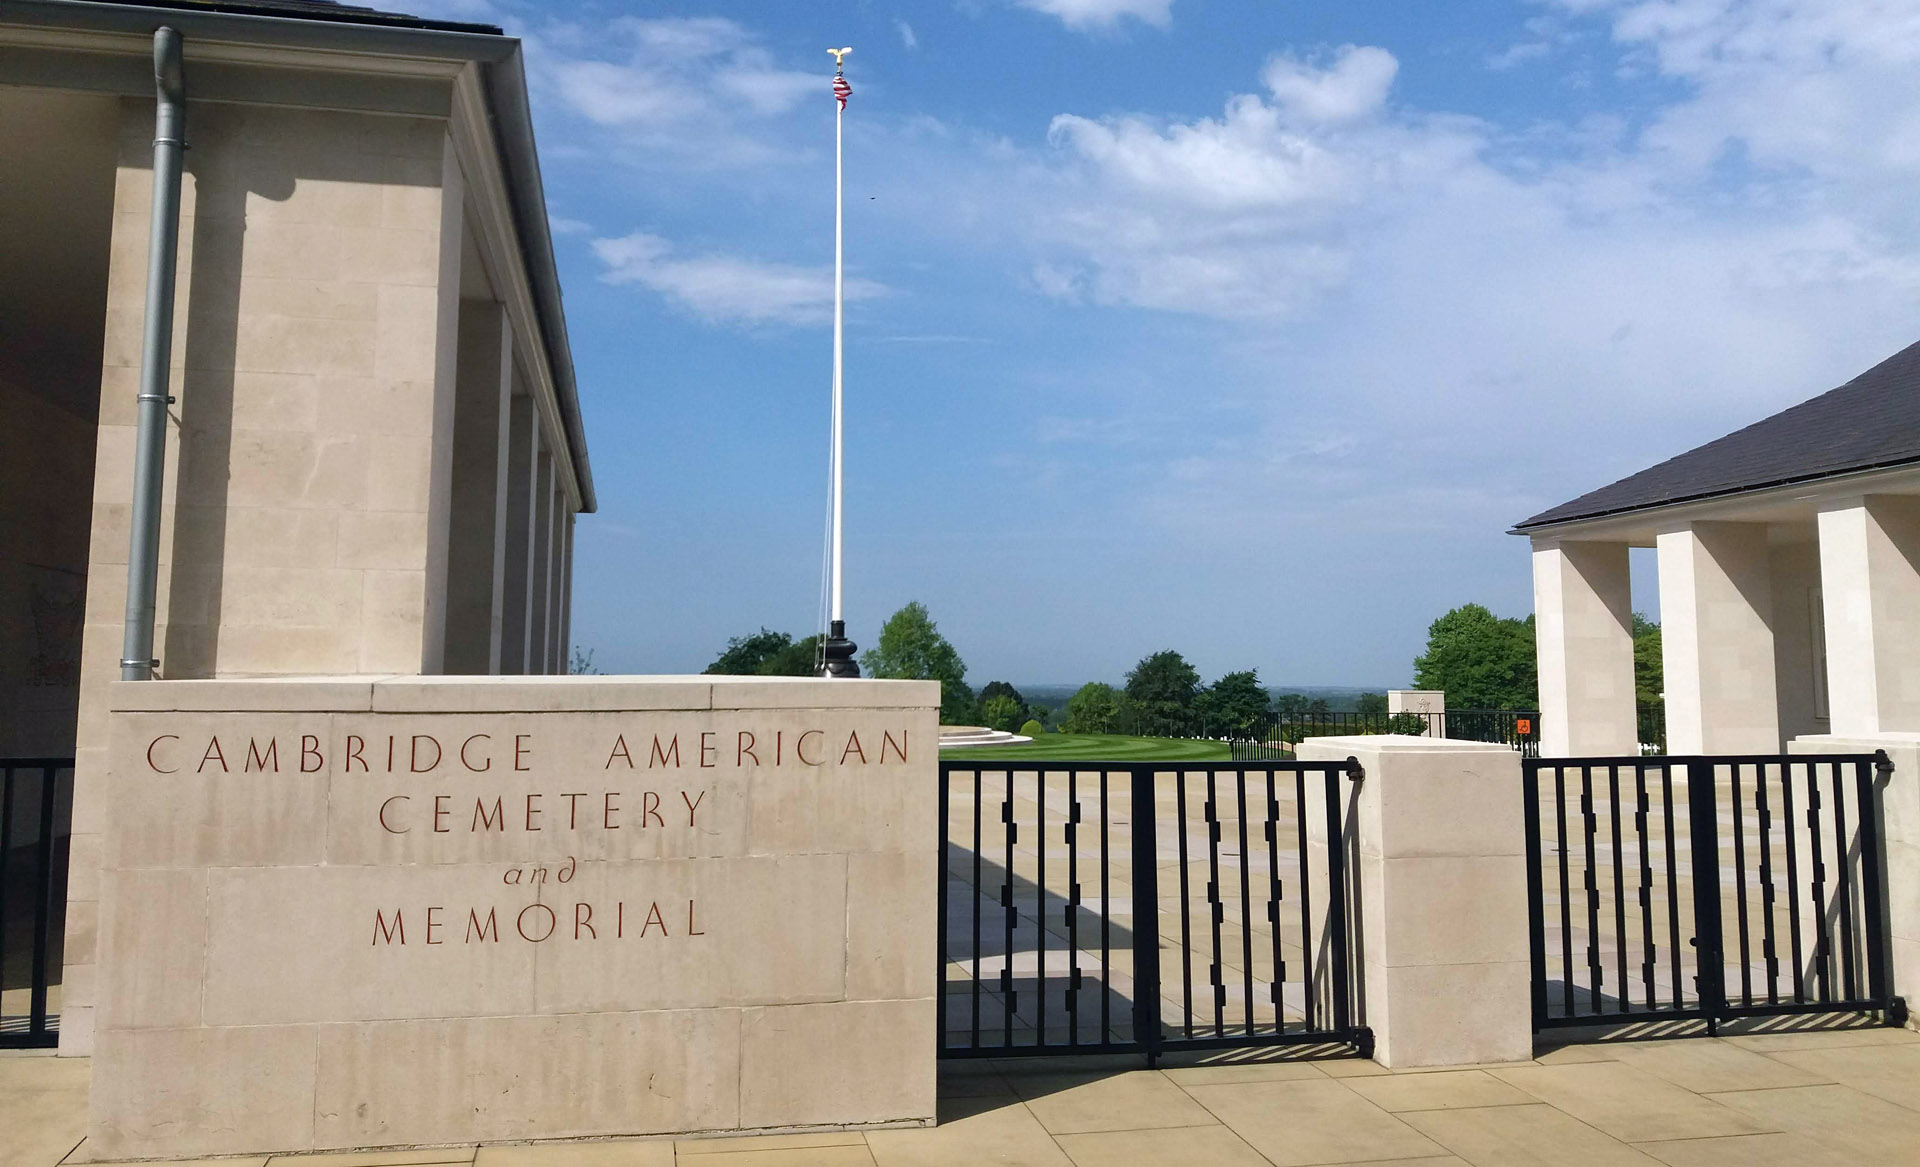 cambridge american cemetary memorial Entrance Madingley